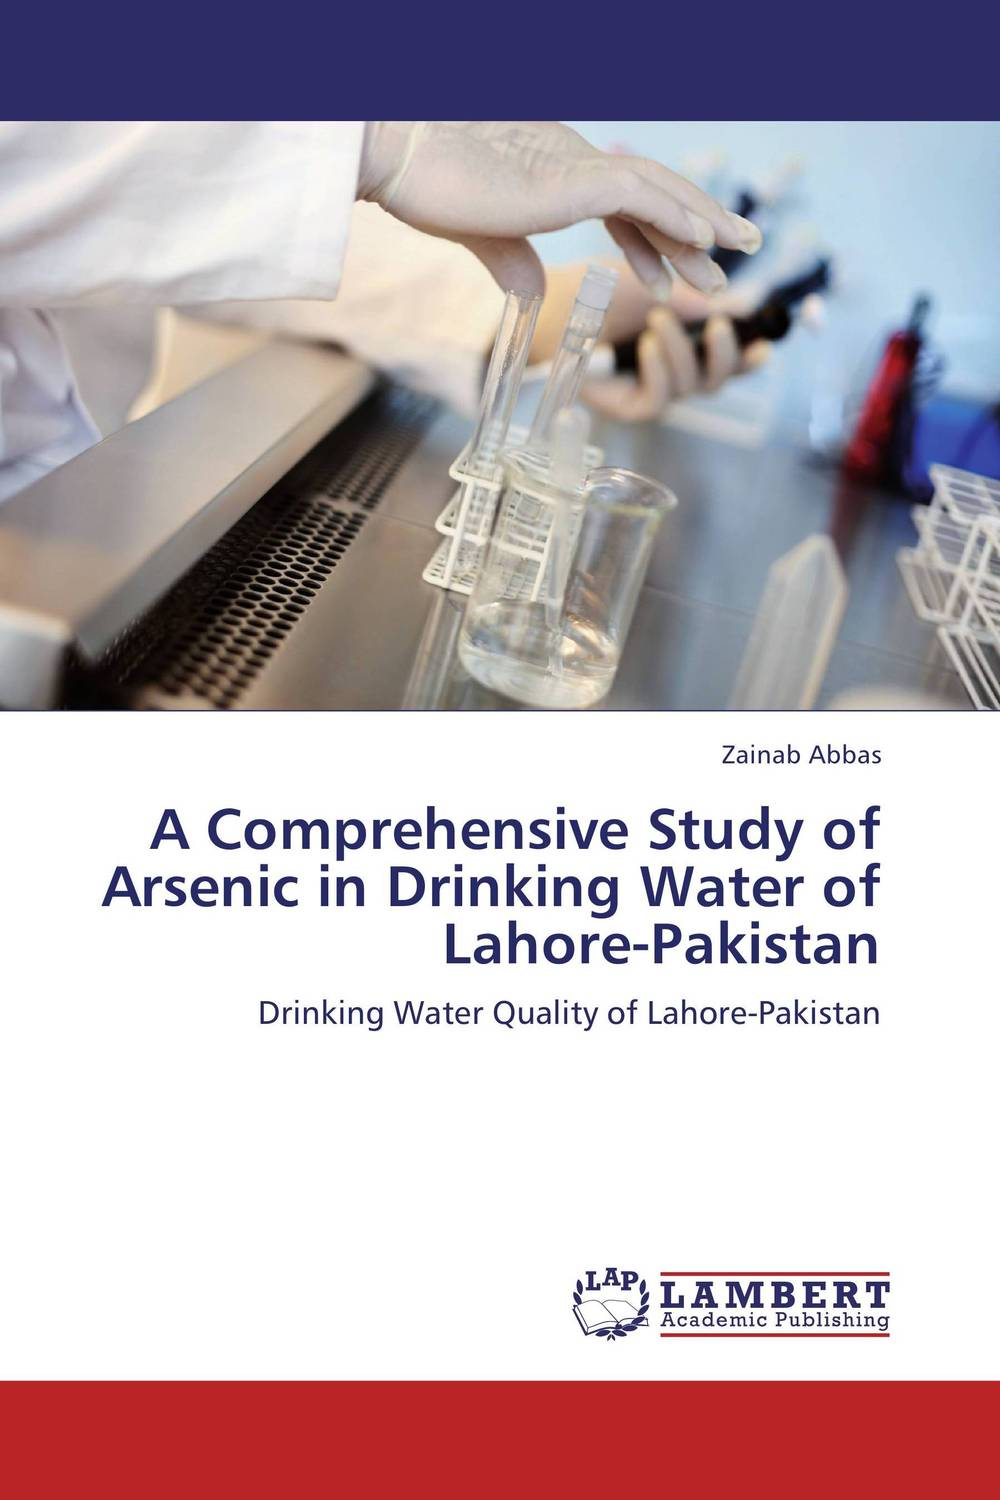 цена на A Comprehensive Study of Arsenic in Drinking Water of Lahore-Pakistan